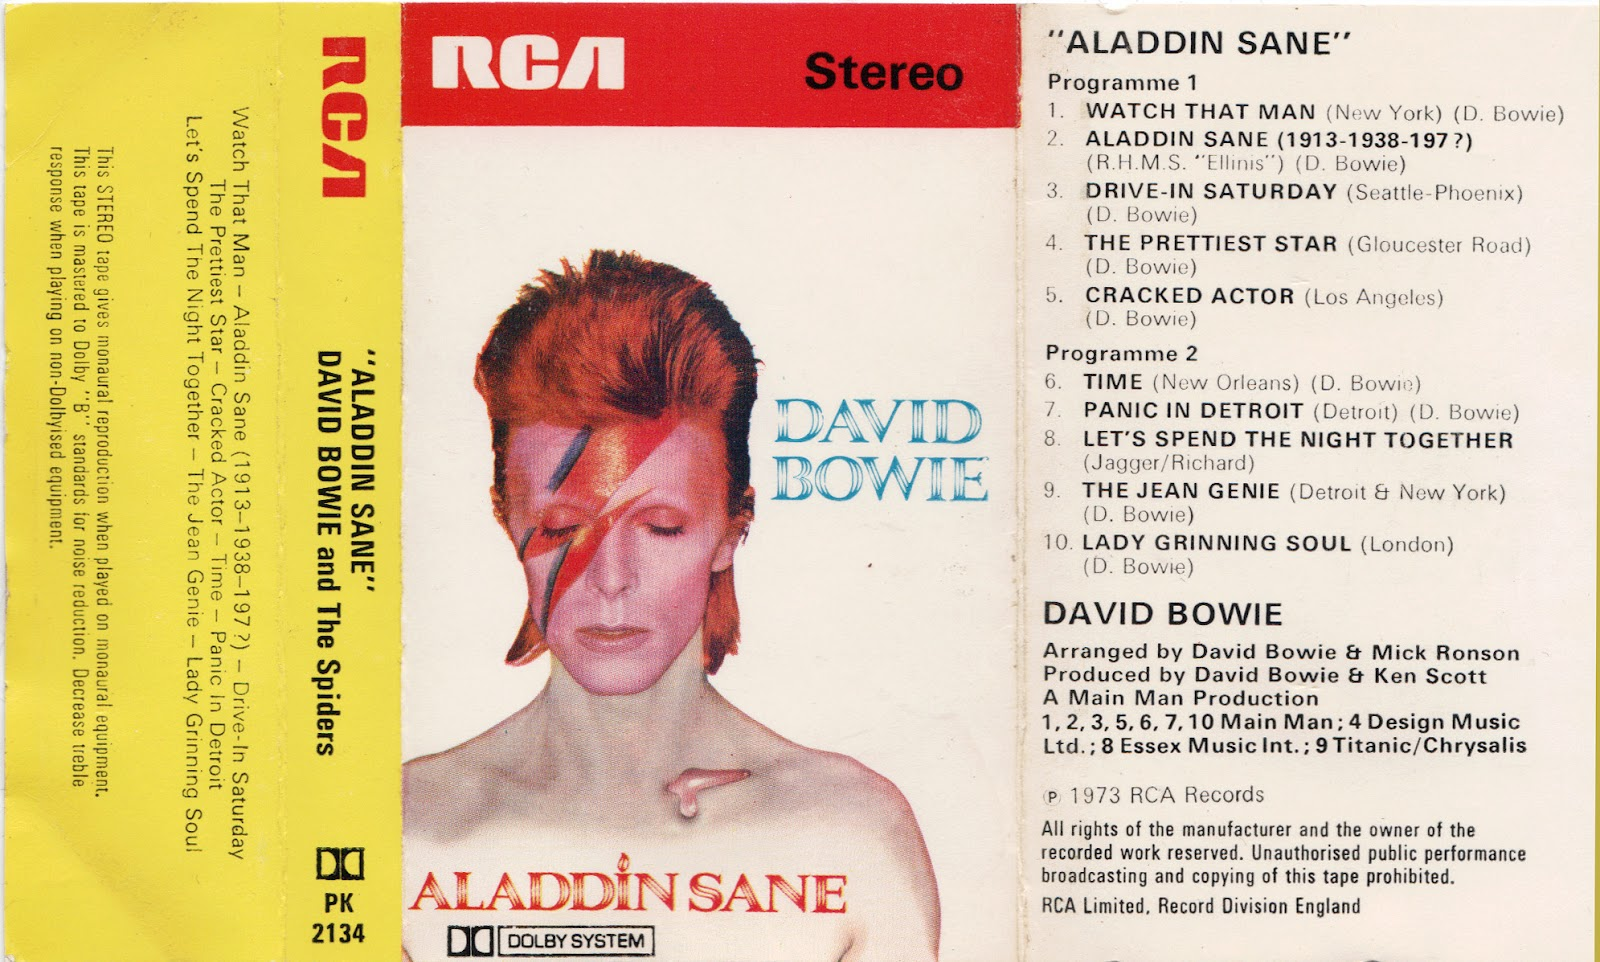 Cassette cover art library while we 39 re at it david bowie - Aladdin singe ...